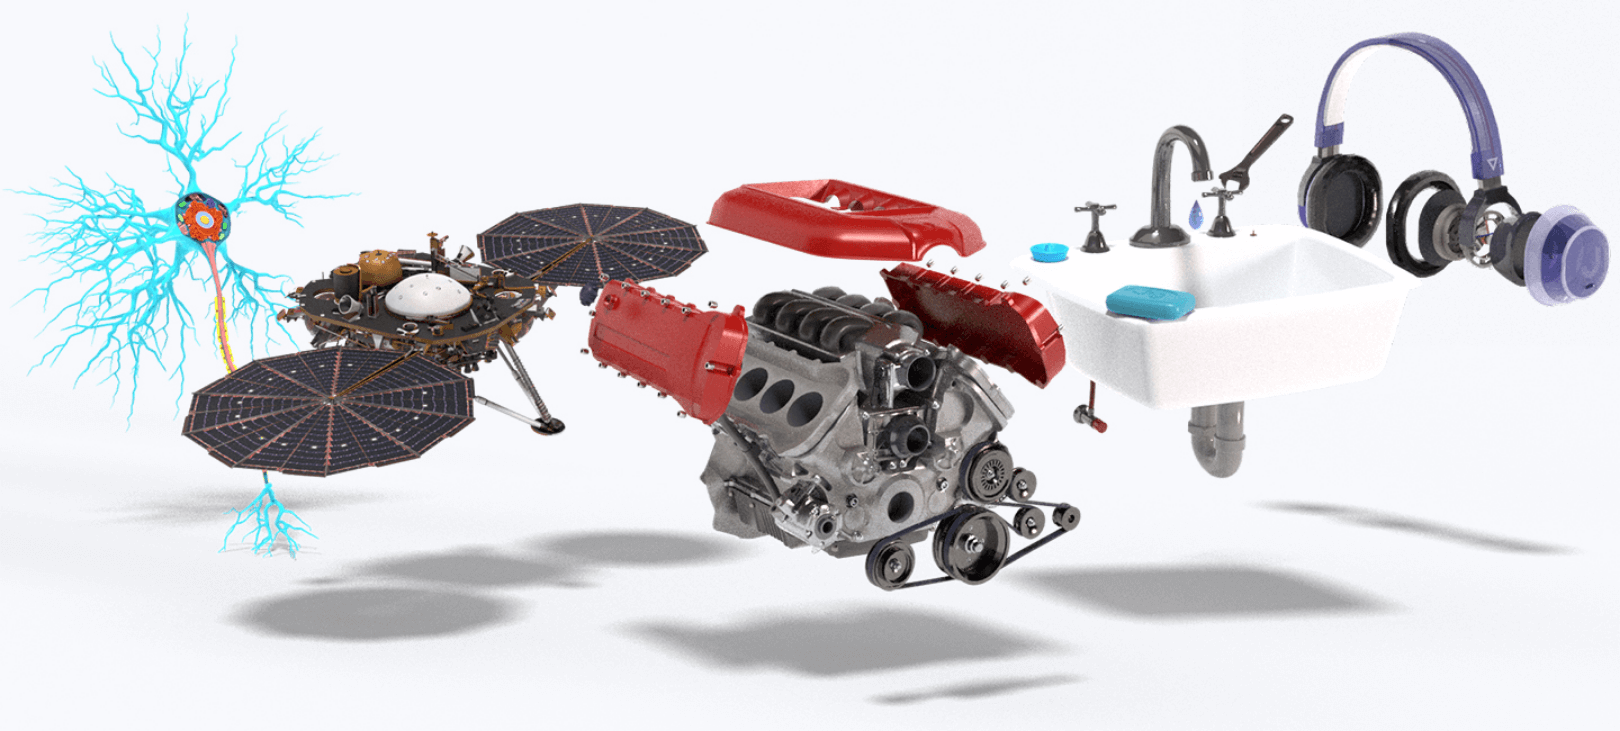 Learn how to make, fix, create and present anything in 3D. Built for augmented reality.